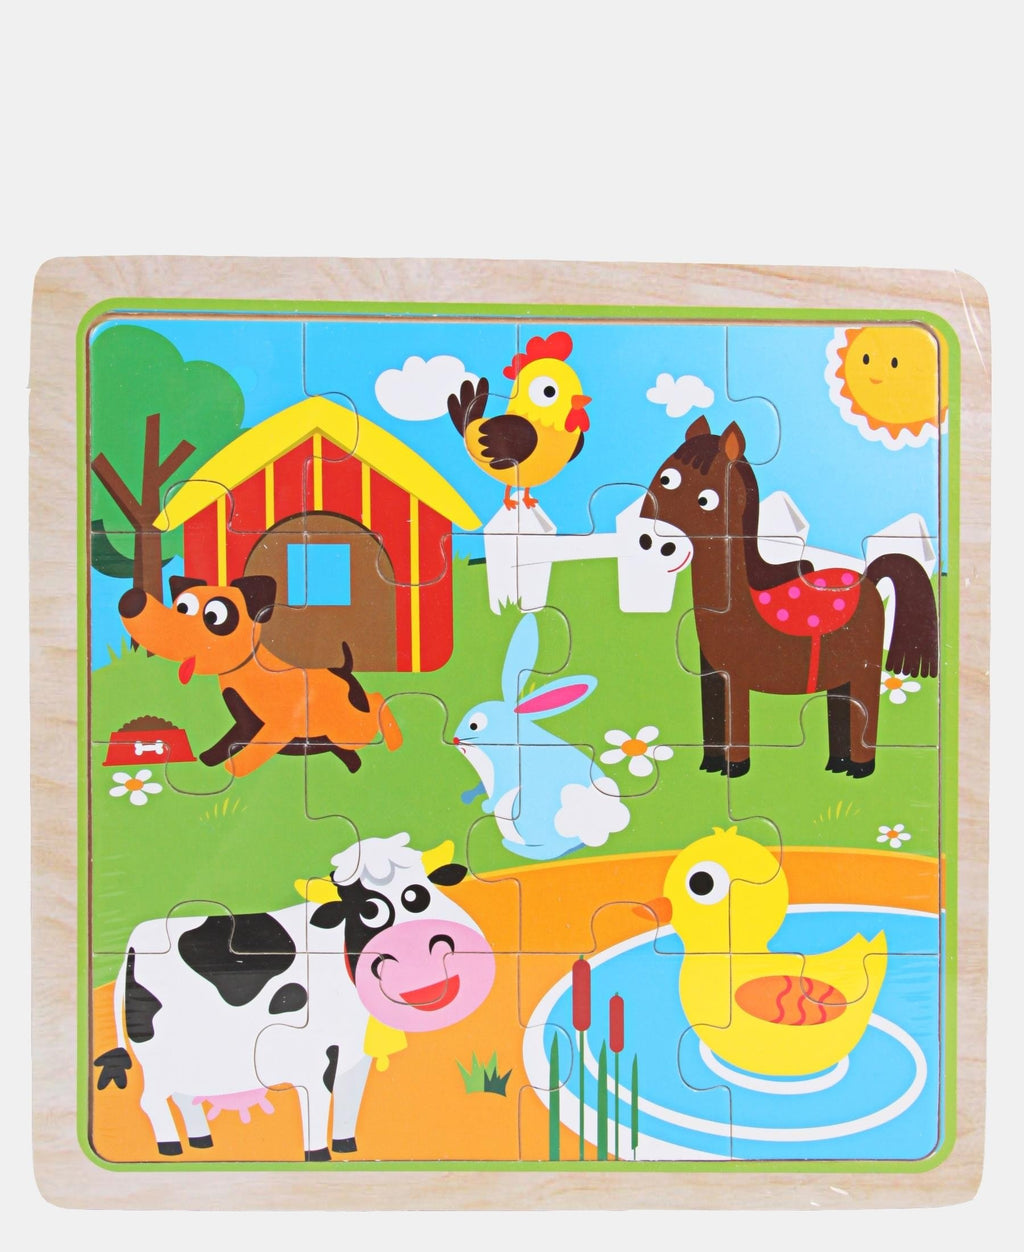 16 Piece Wooden Farm Animals Puzzle - Multi